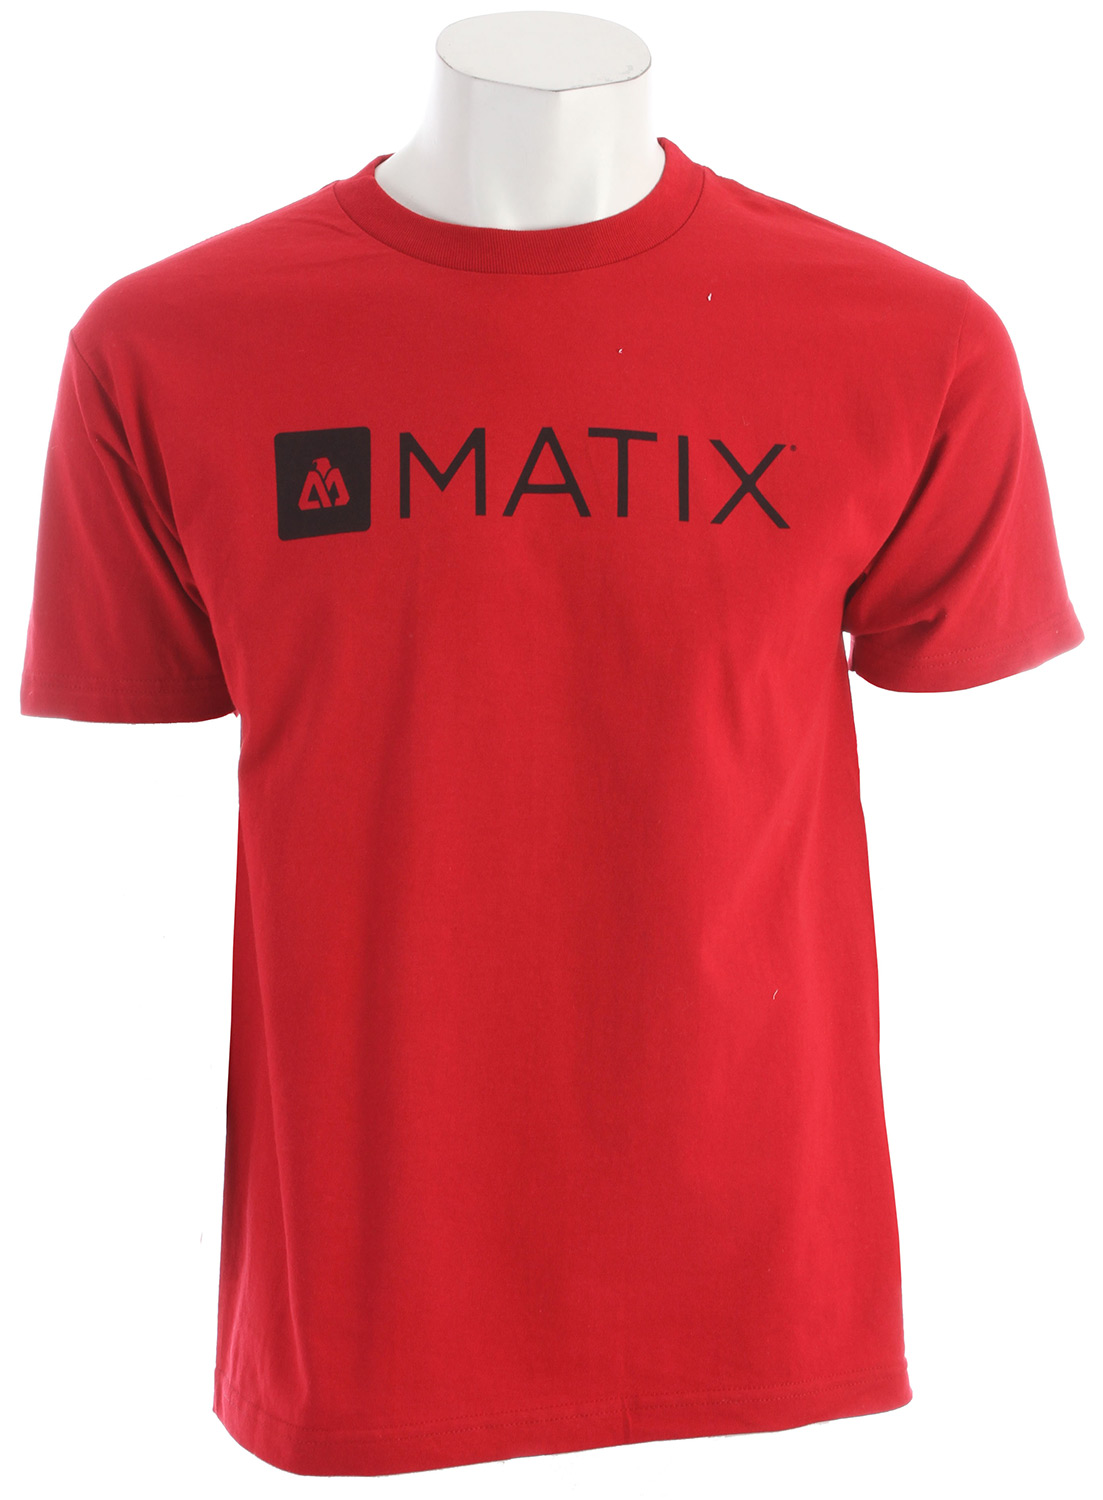 Key Features of the Matix Monolin T-Shirt: Inkprint with cuff label and Monovert lower left back hit. Standard Fit. Material: 100% Cotton - $12.95